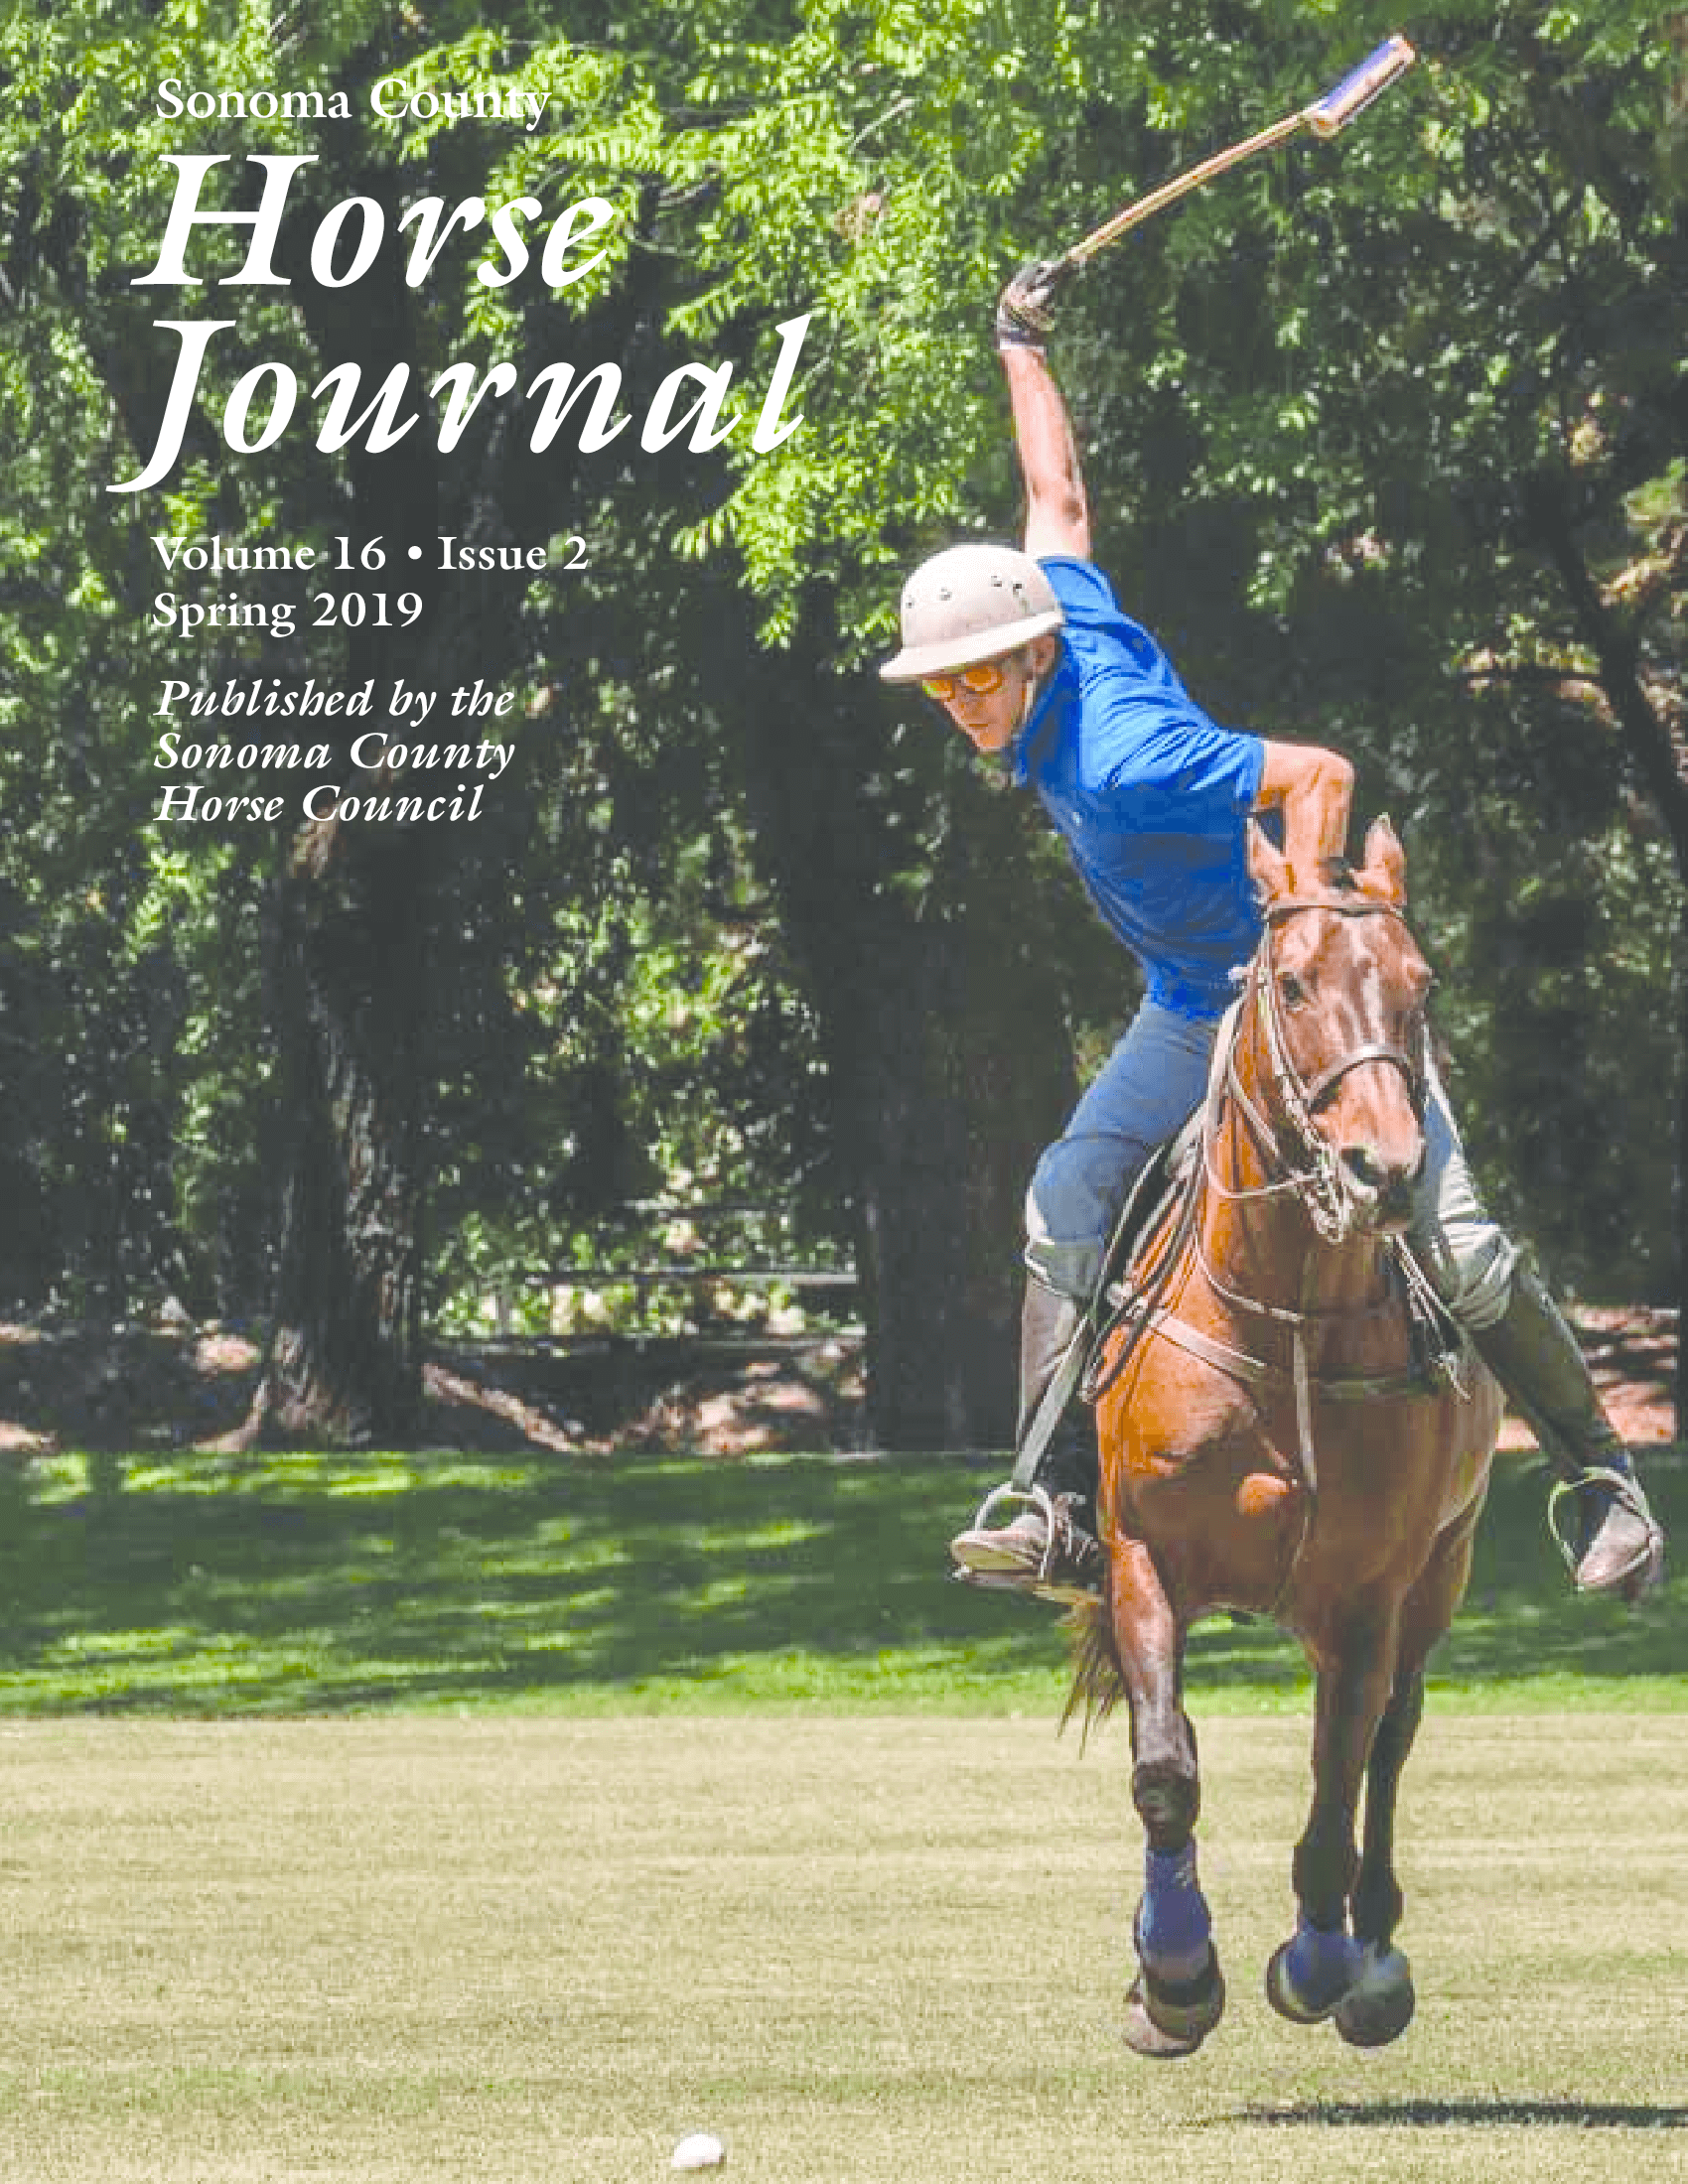 Sonoma County Horse Journal Spring 2019.png